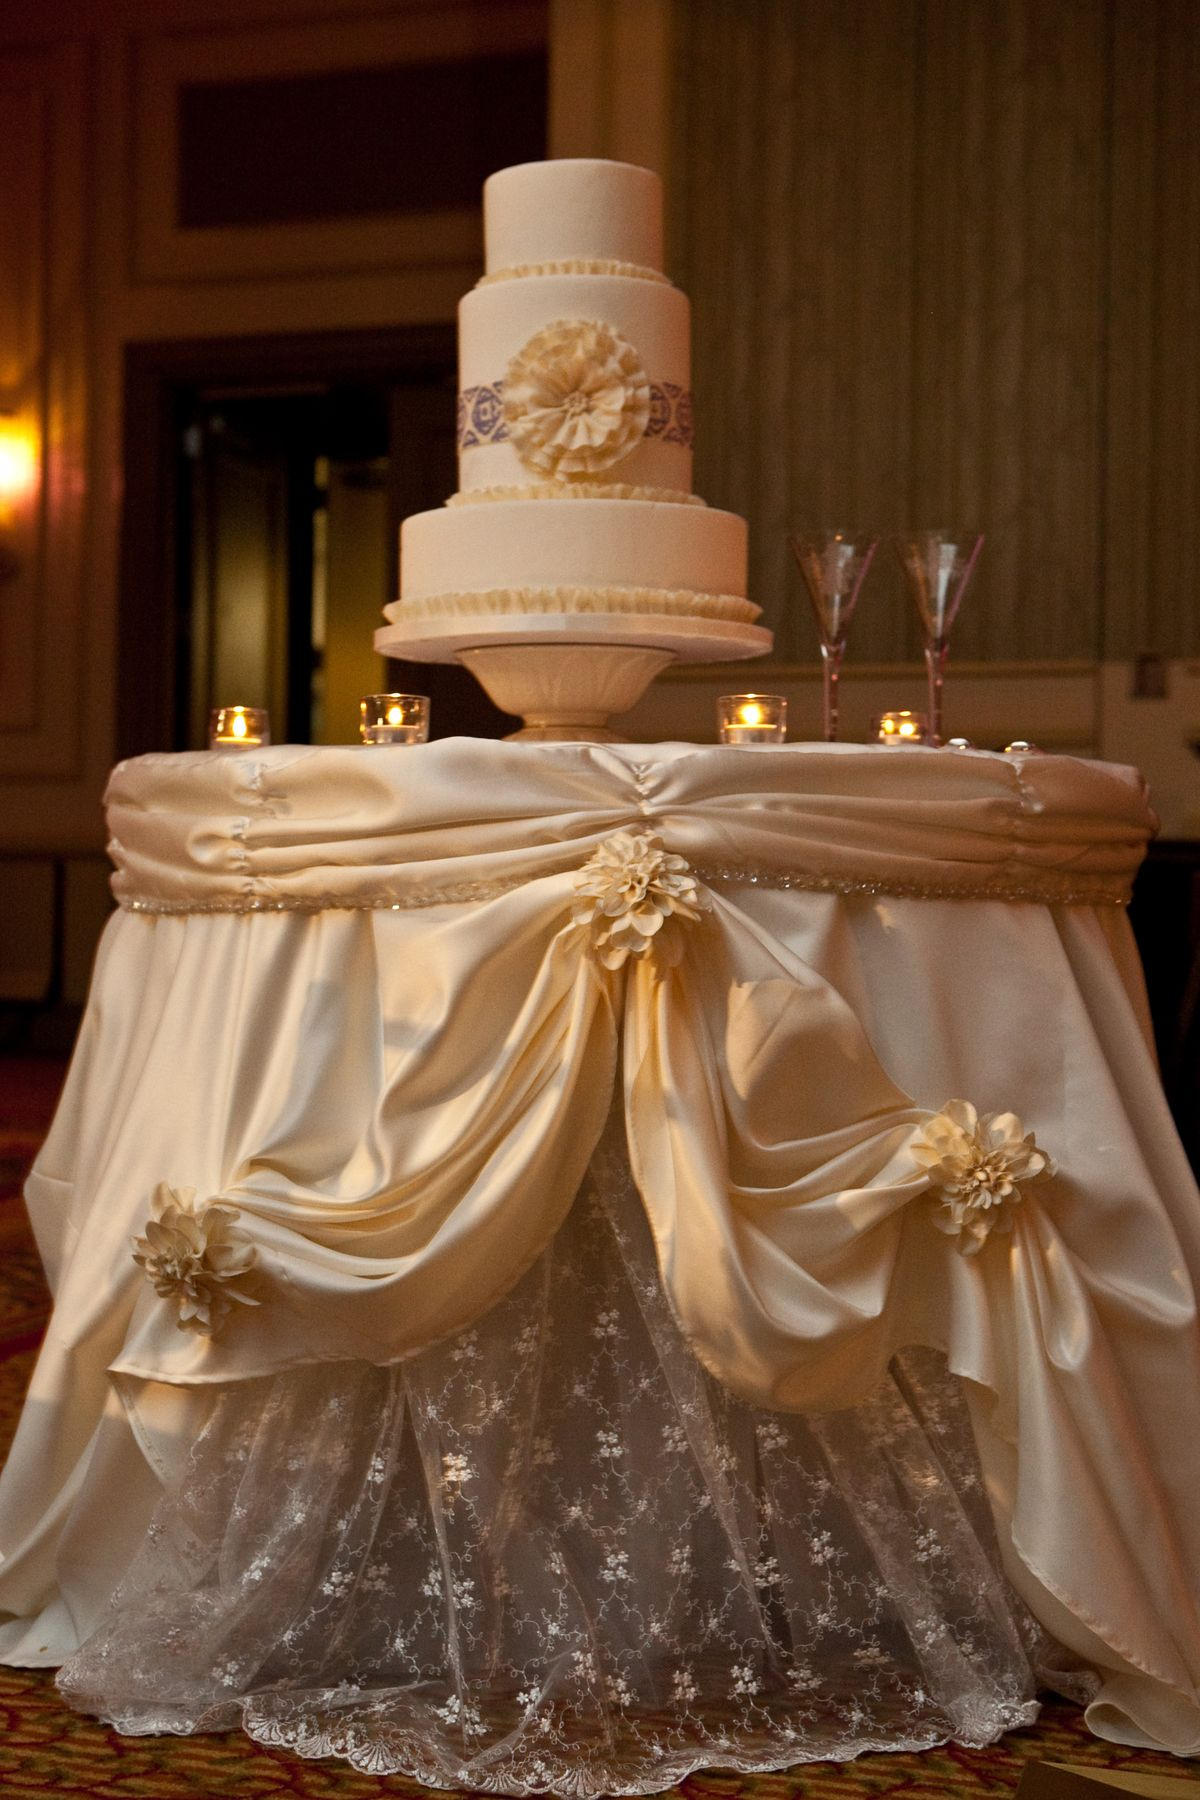 Cake Table Decoration The Gorgeous Cake Table Linen Was Made To Resemble The Brides